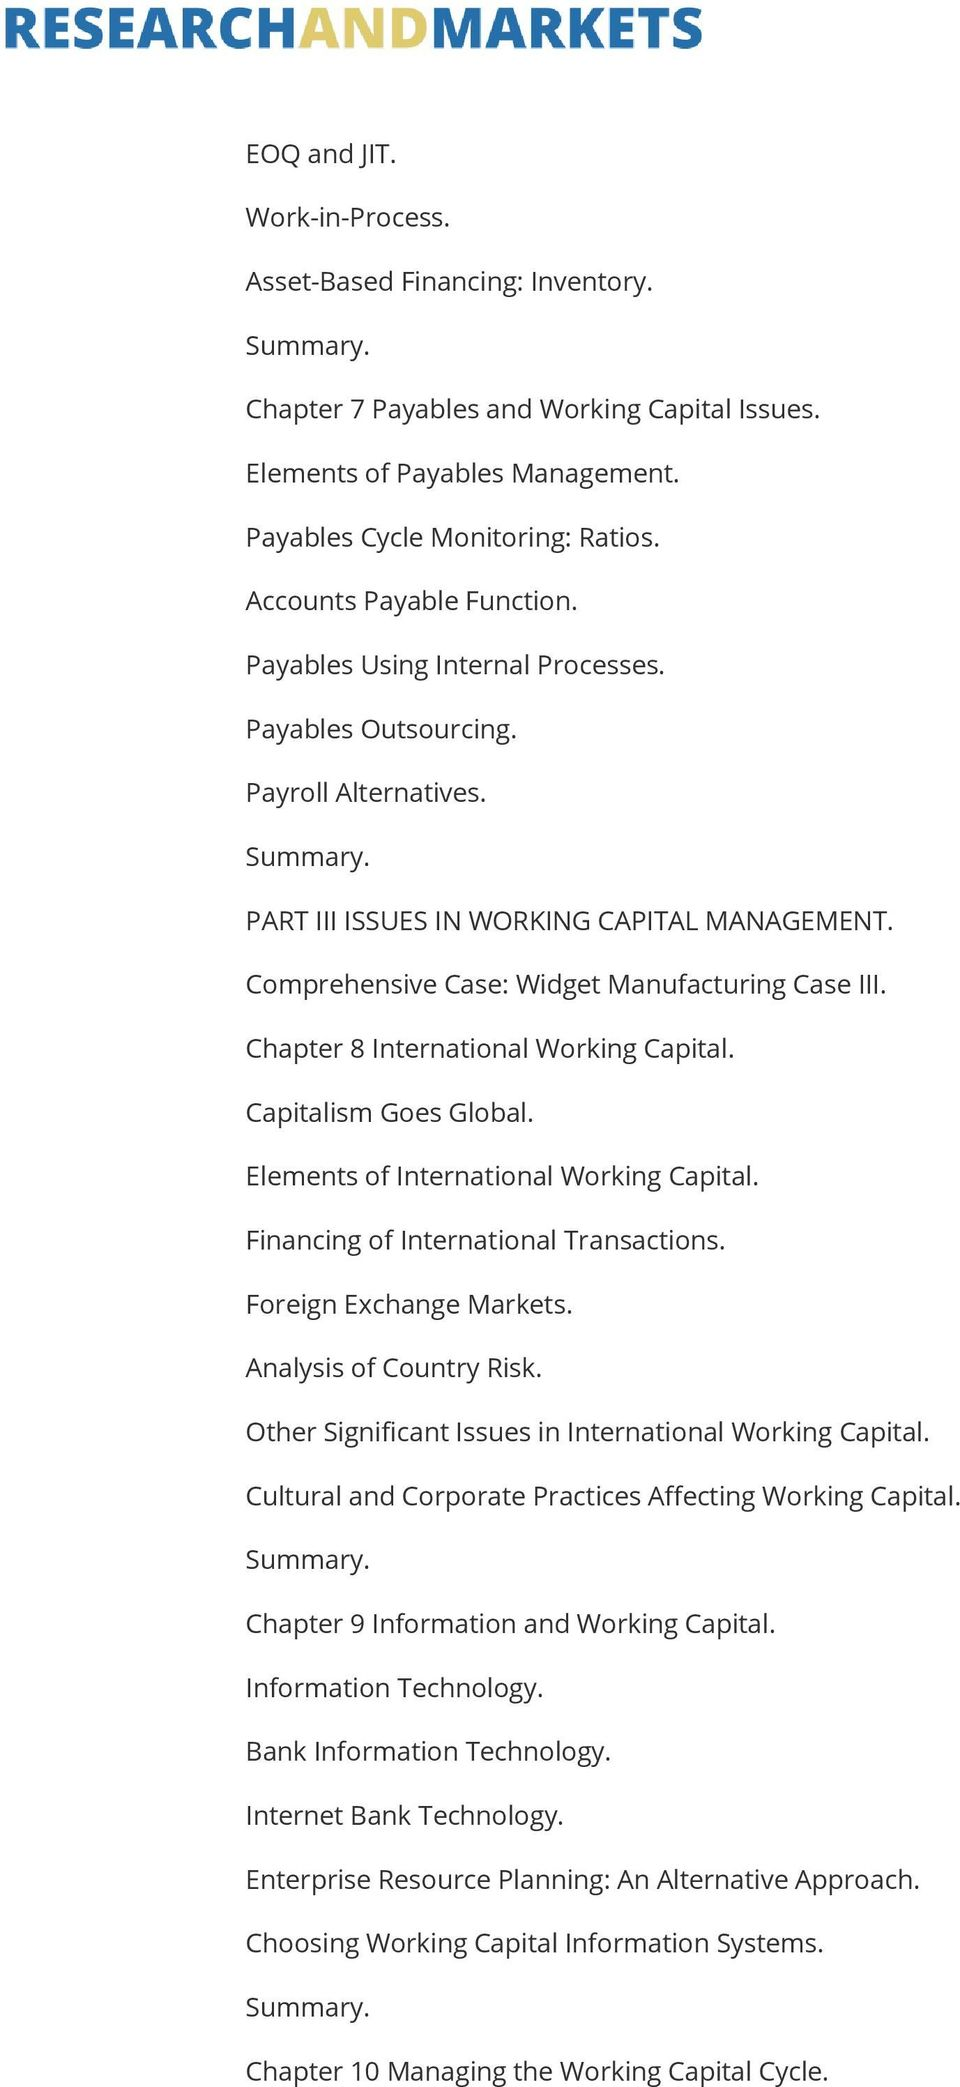 Comprehensive Case: Widget Manufacturing Case III. Chapter 8 International Working Capital. Capitalism Goes Global. Elements of International Working Capital. Financing of International Transactions.